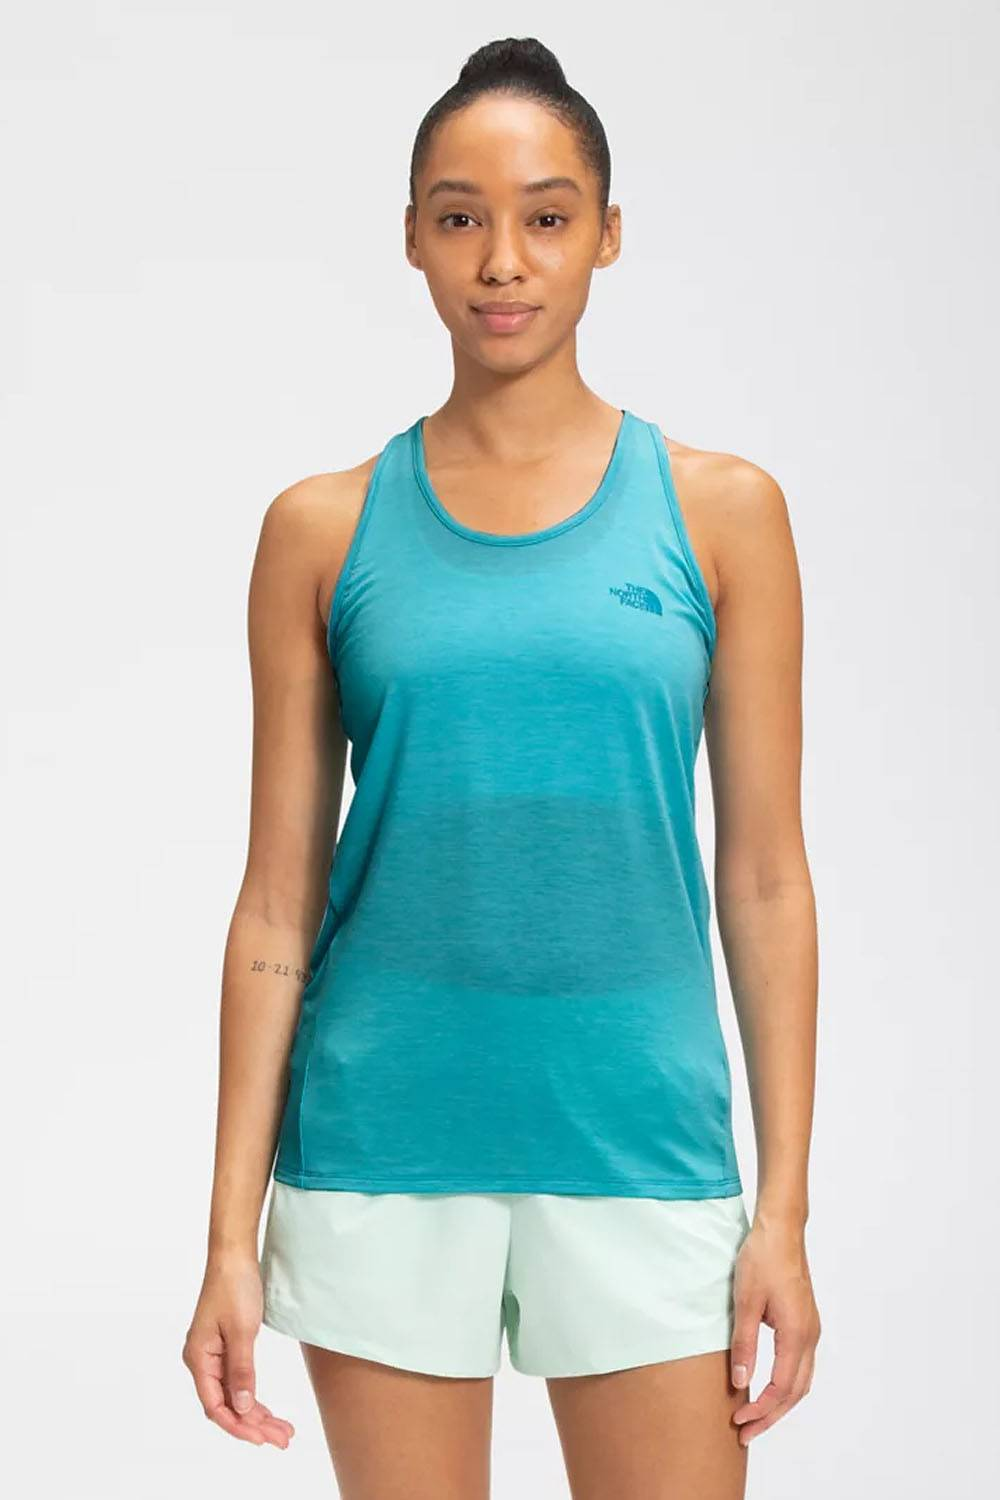 north face top teenager clothing